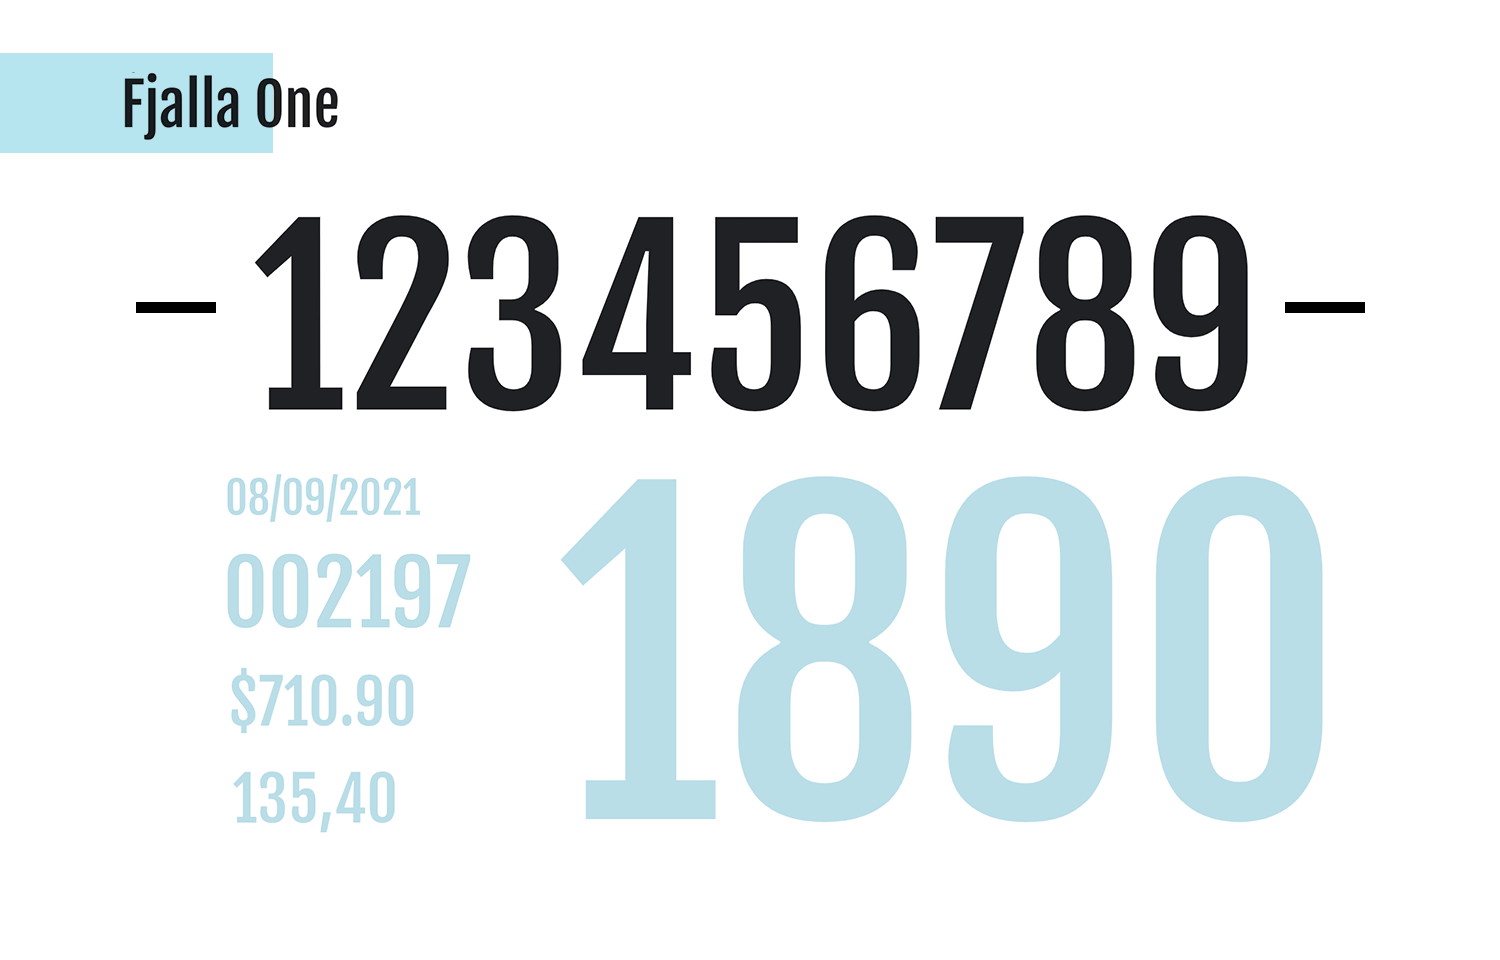 fjalla one as awesome free number font